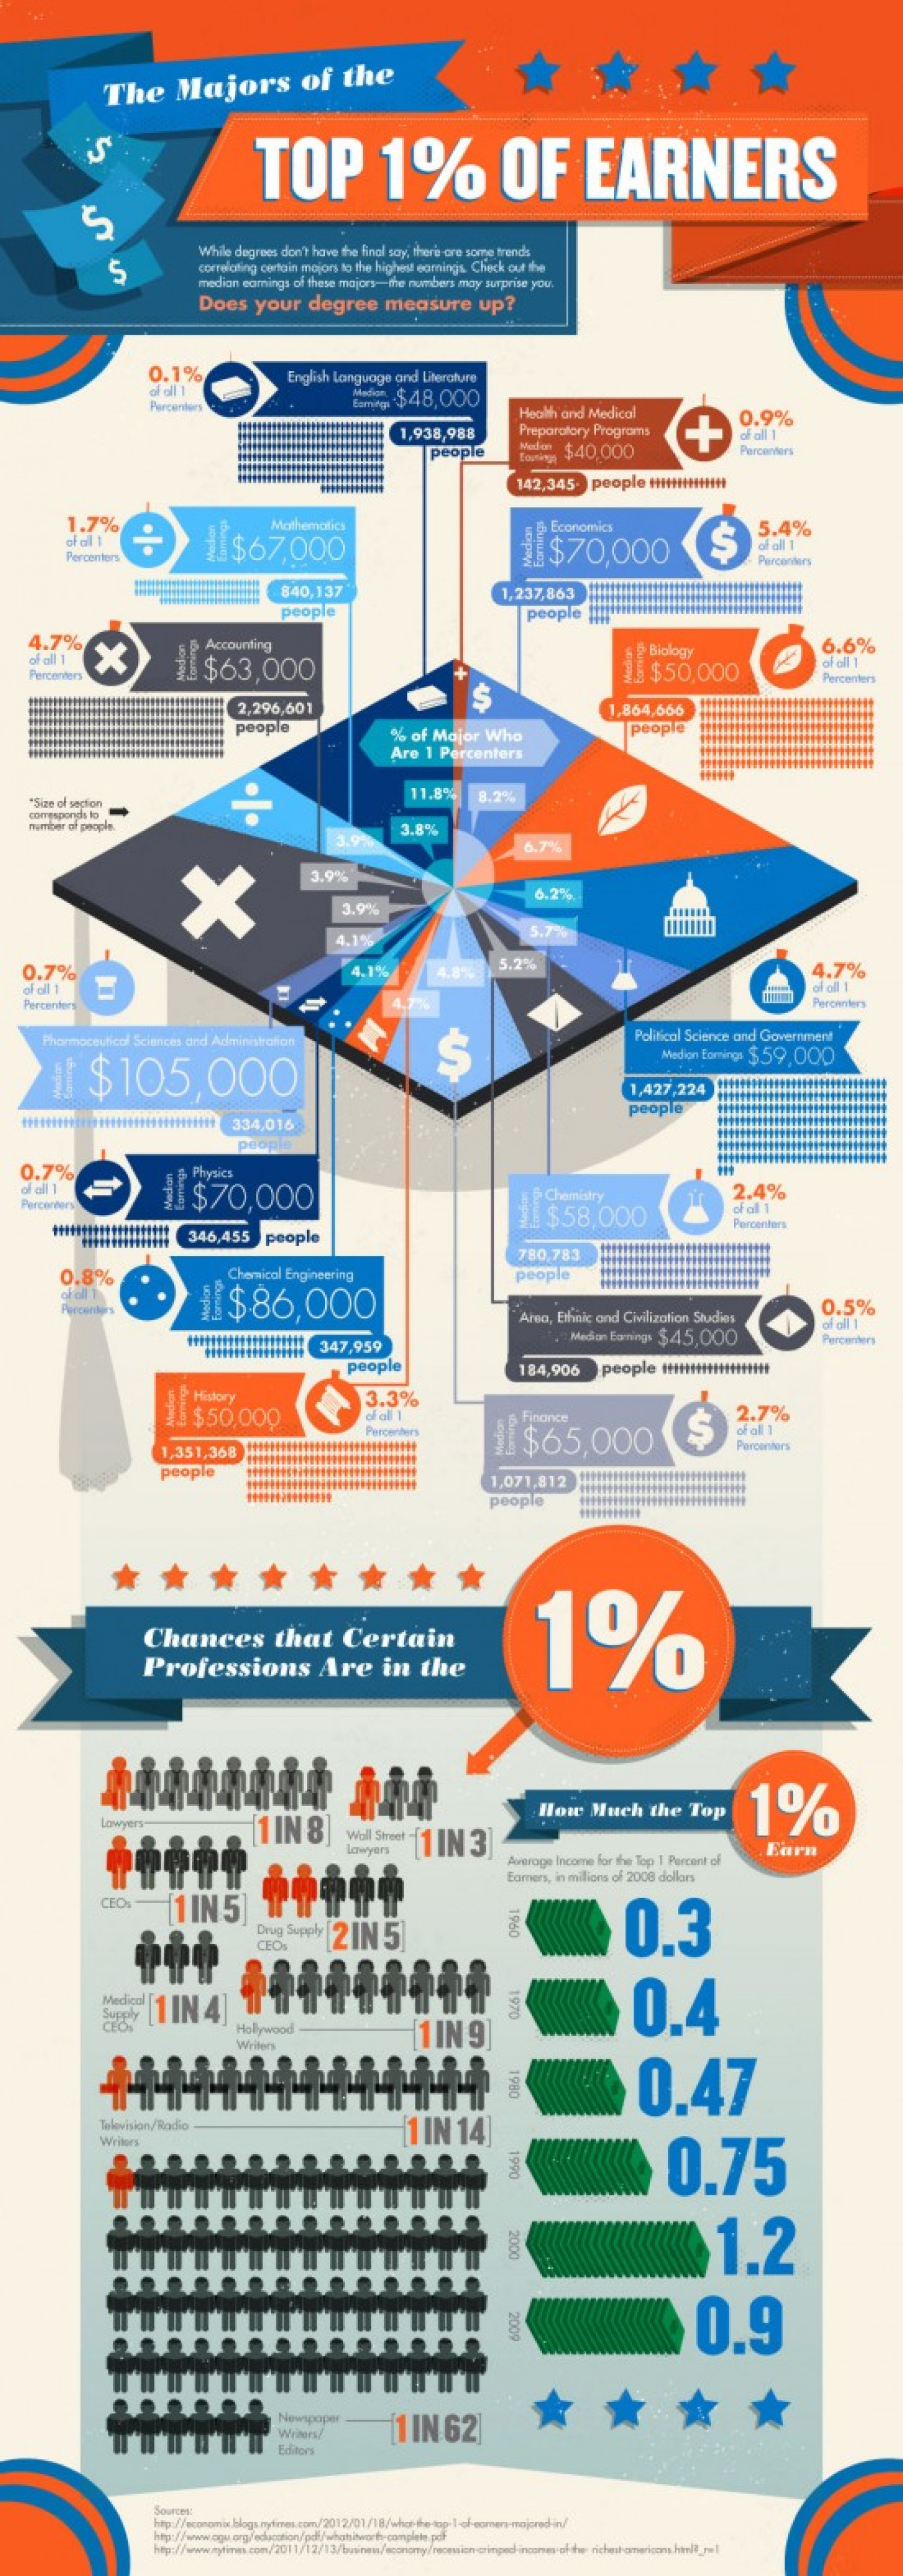 What the Top 1% of Earners Majored In Infographic